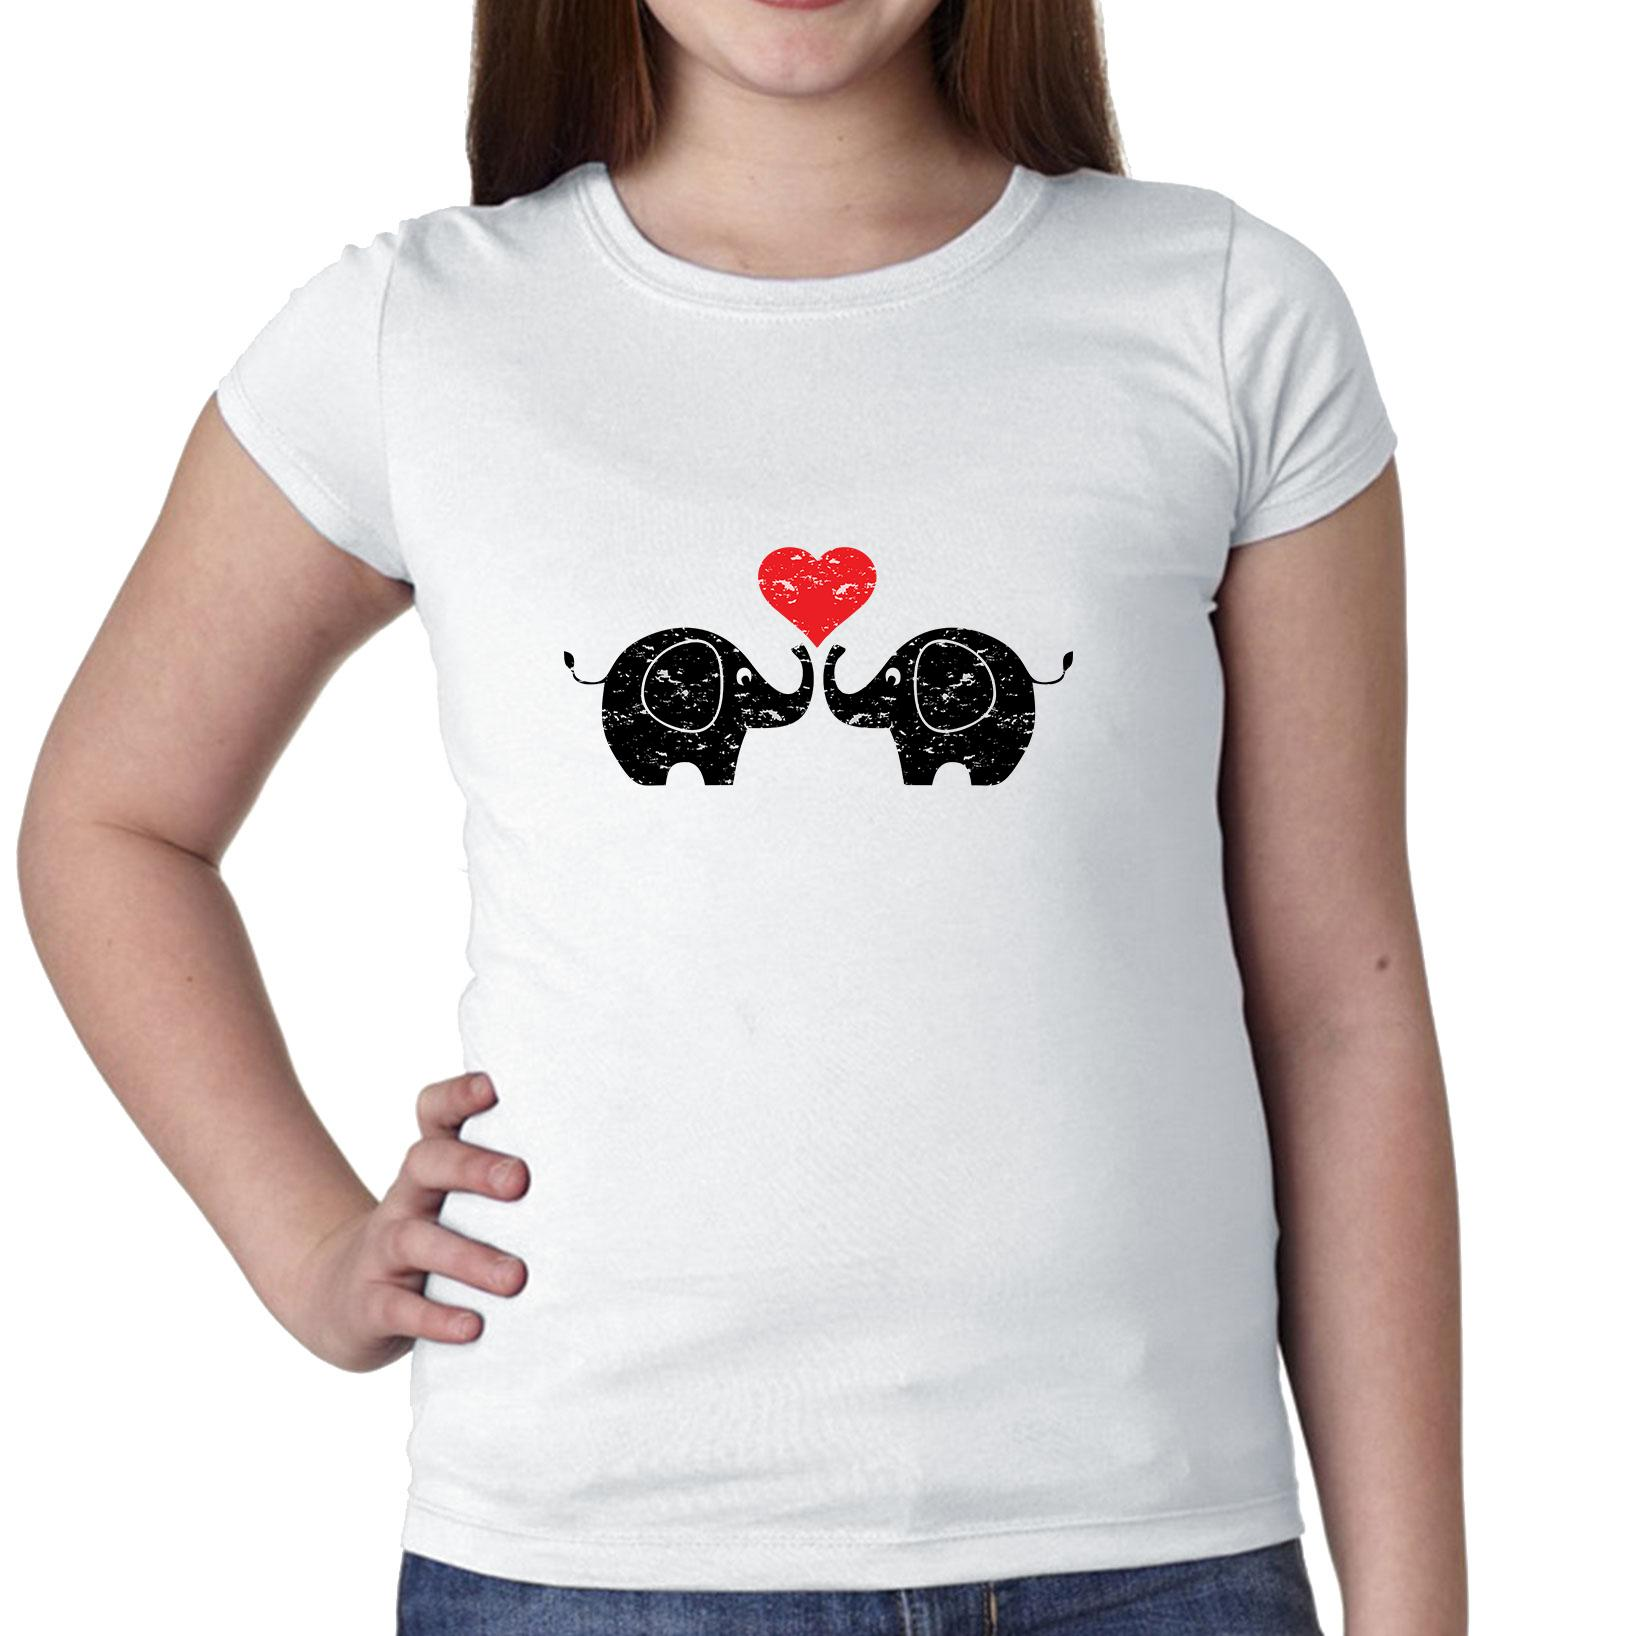 Elephants in Love - Red Heart Touching Trunks Cute Girl's Cotton Youth T-Shirt